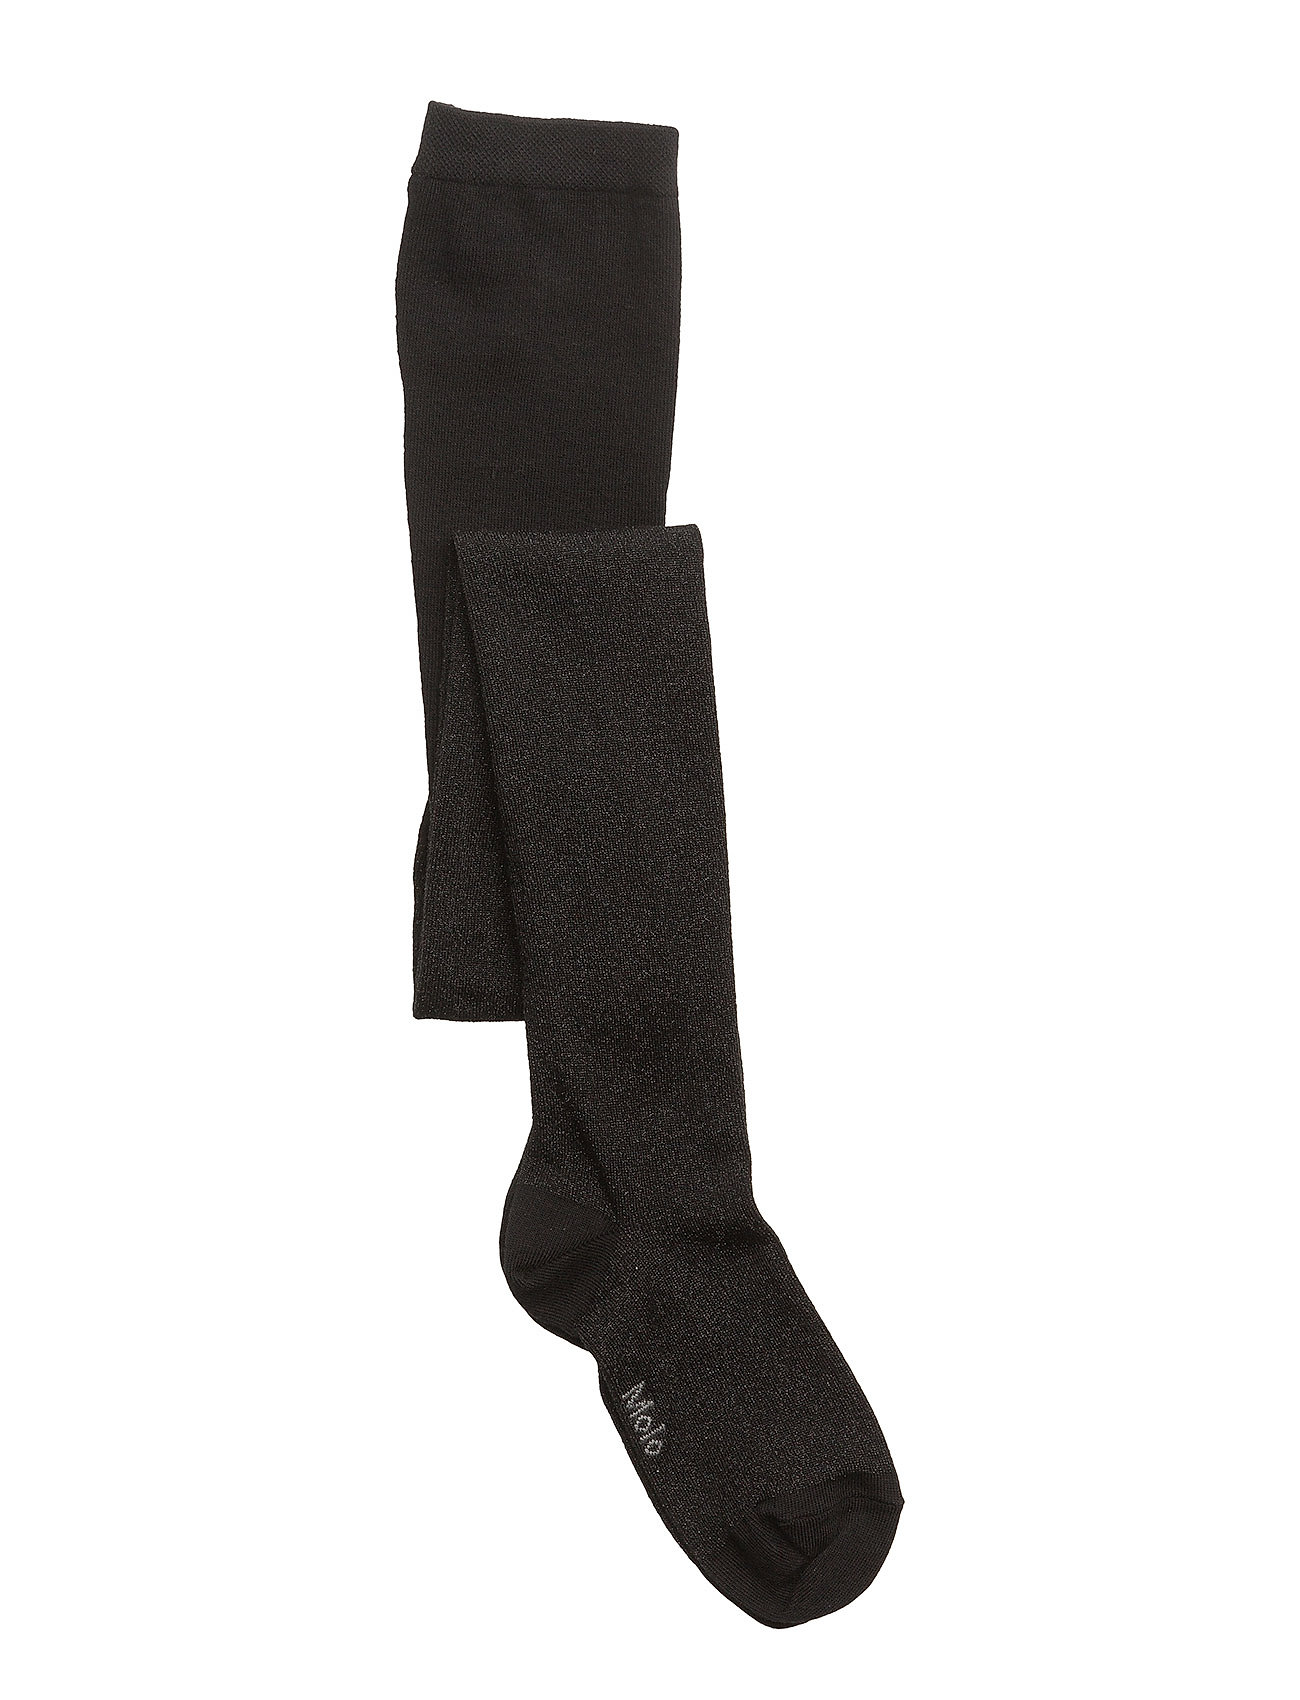 19755cdfe Glitter Tights (Black) (£13.97) - Molo -